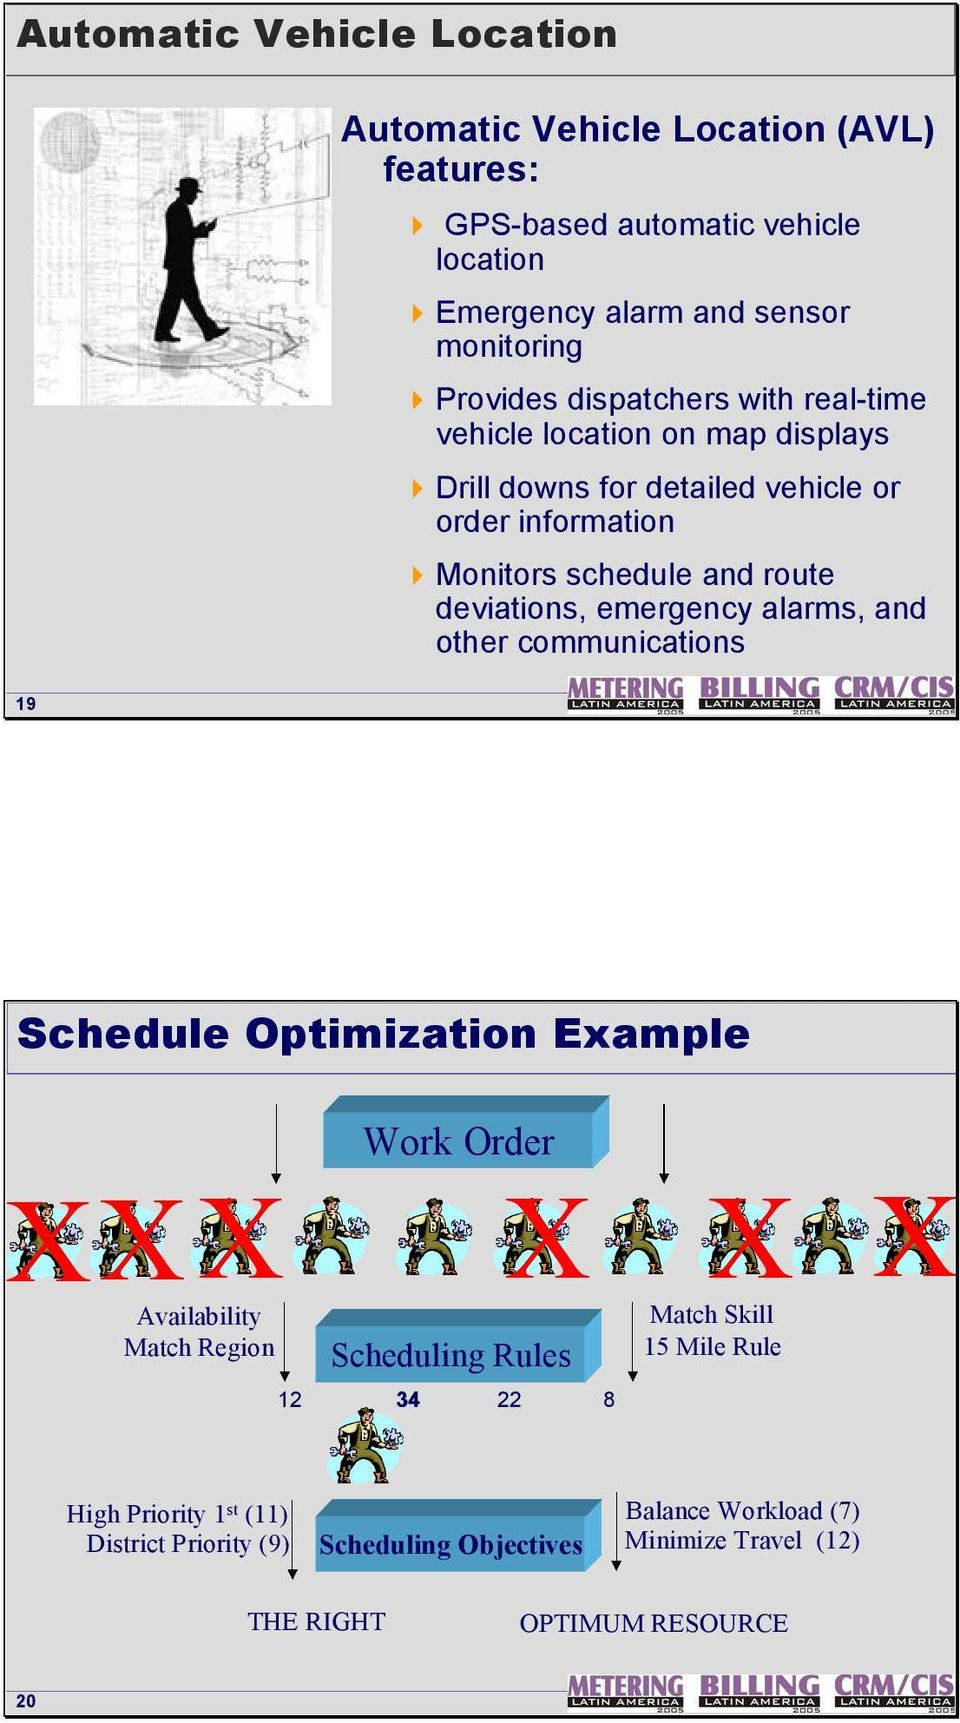 deviations, emergency alarms, and other communications Schedule Optimization Example X XX Availability Match Region Work Order Scheduling Rules 12 34 22 8 X